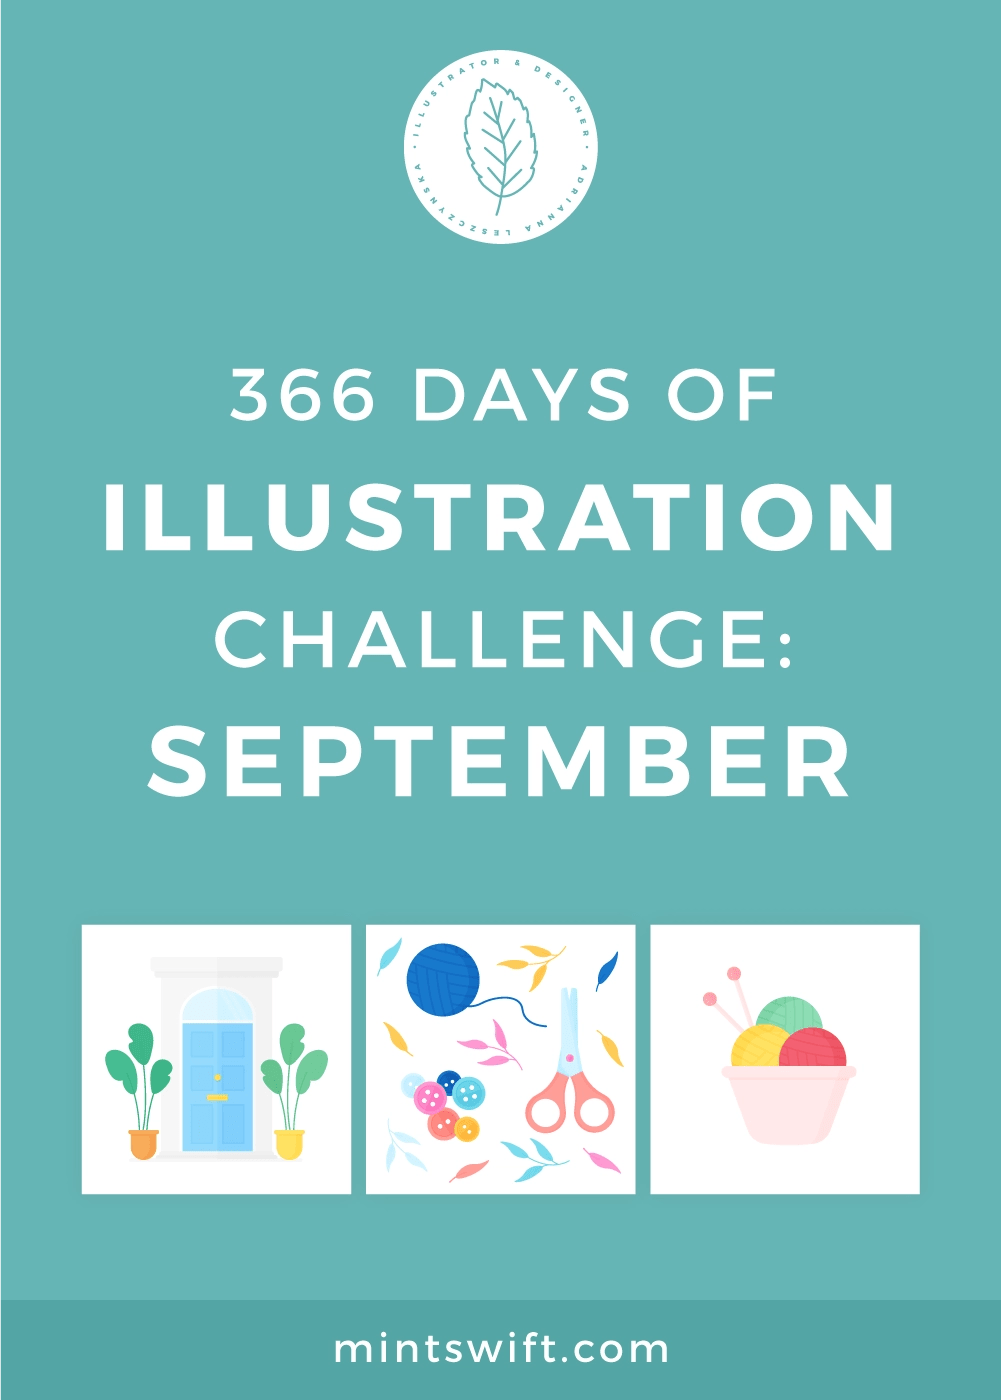 366 Days of Illustration Challenge - September by MintSwift. The ninth month of illustration challenge (day 245-274). Vector illustrations in flat design style about stationery, knitting, coffee, animation, Victorian doors